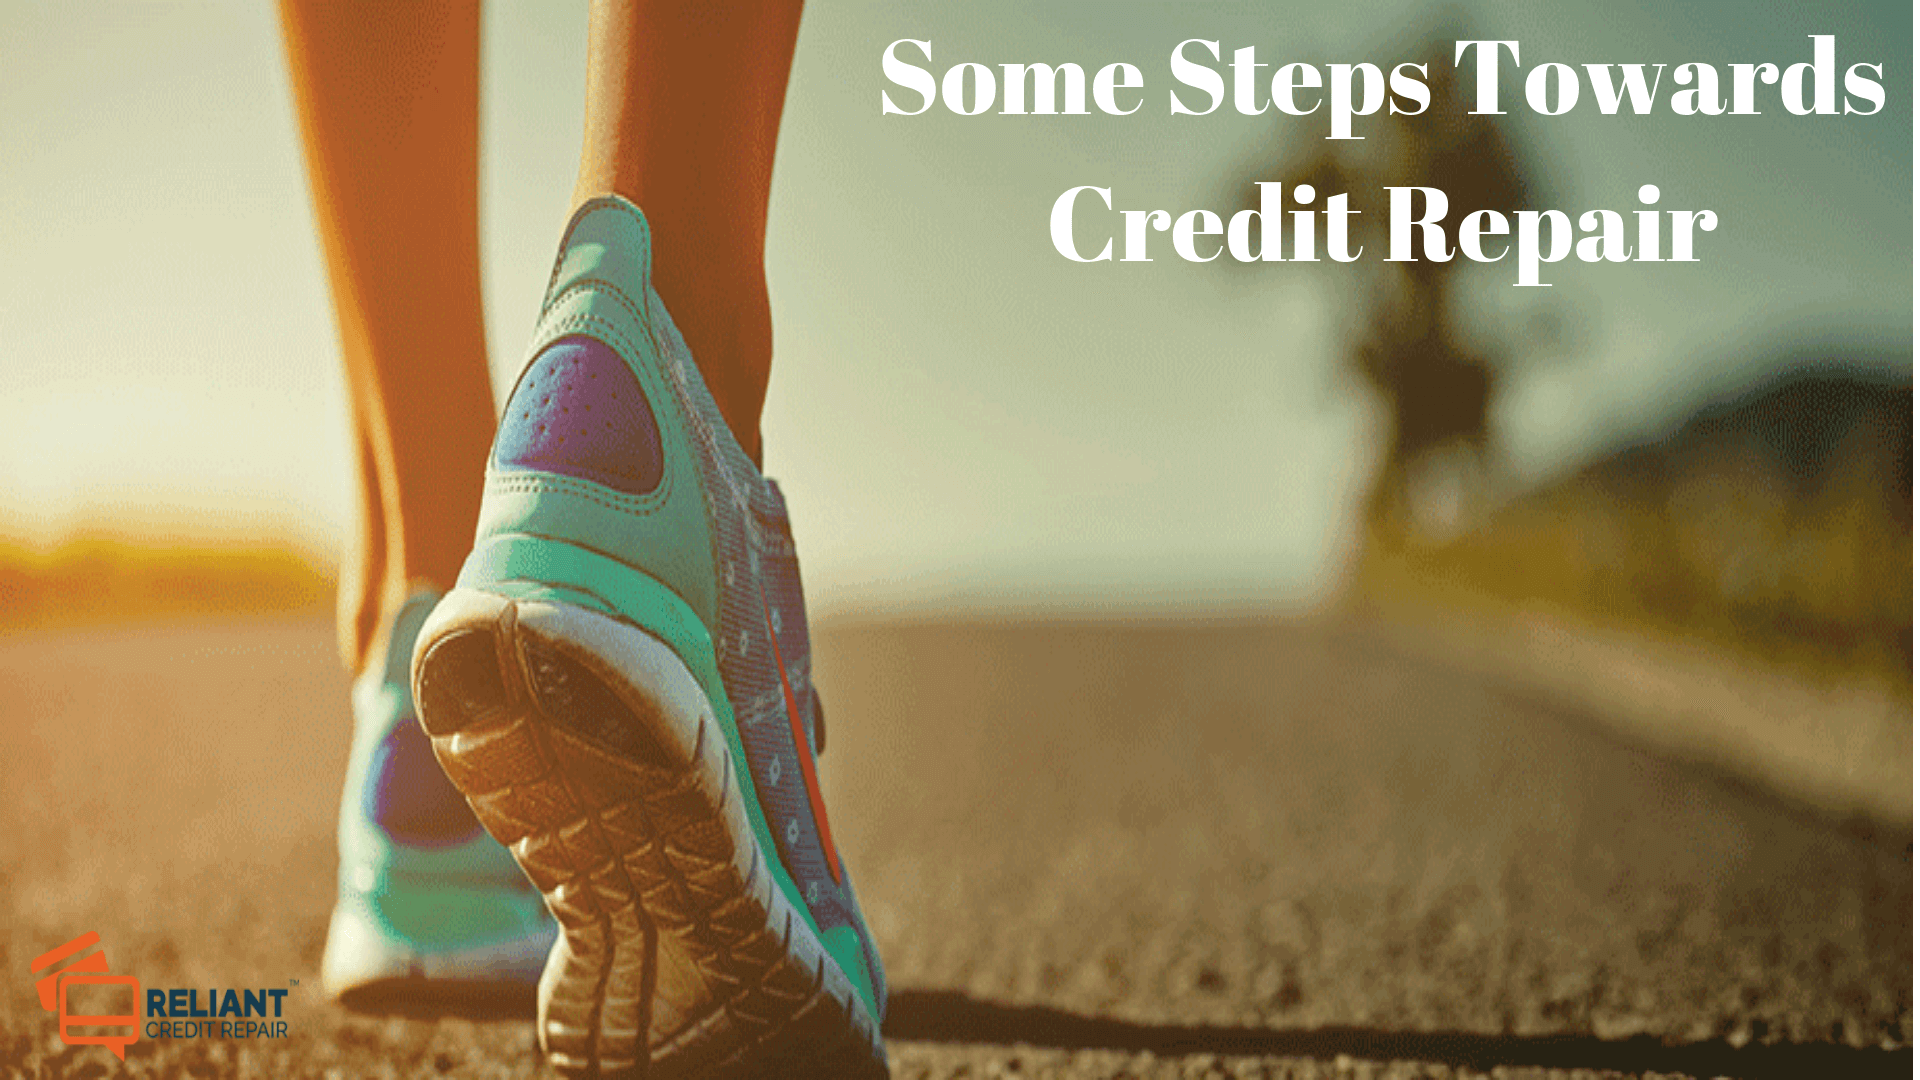 Some Steps Towards Credit Repair